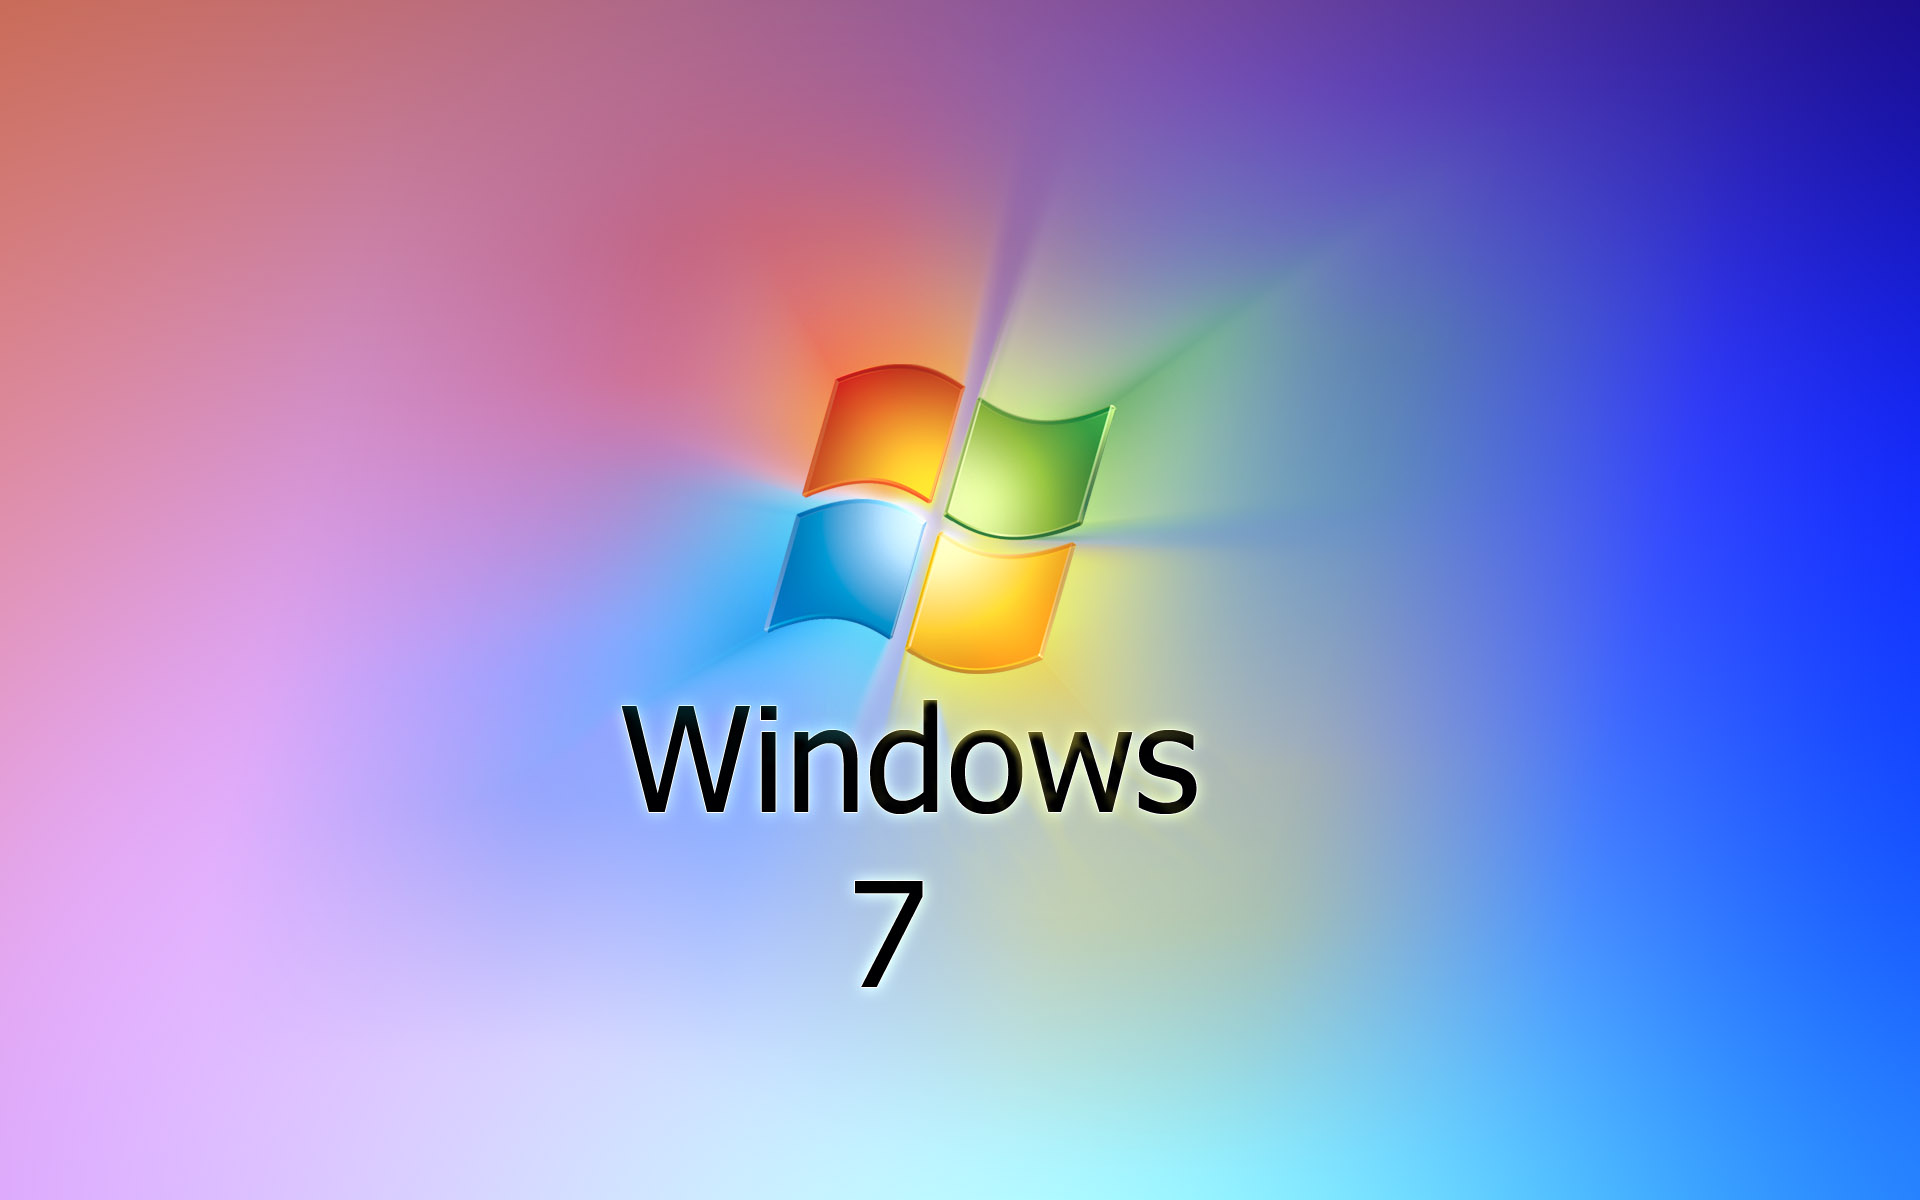 Windows 7 Wallpapers 1920x1200